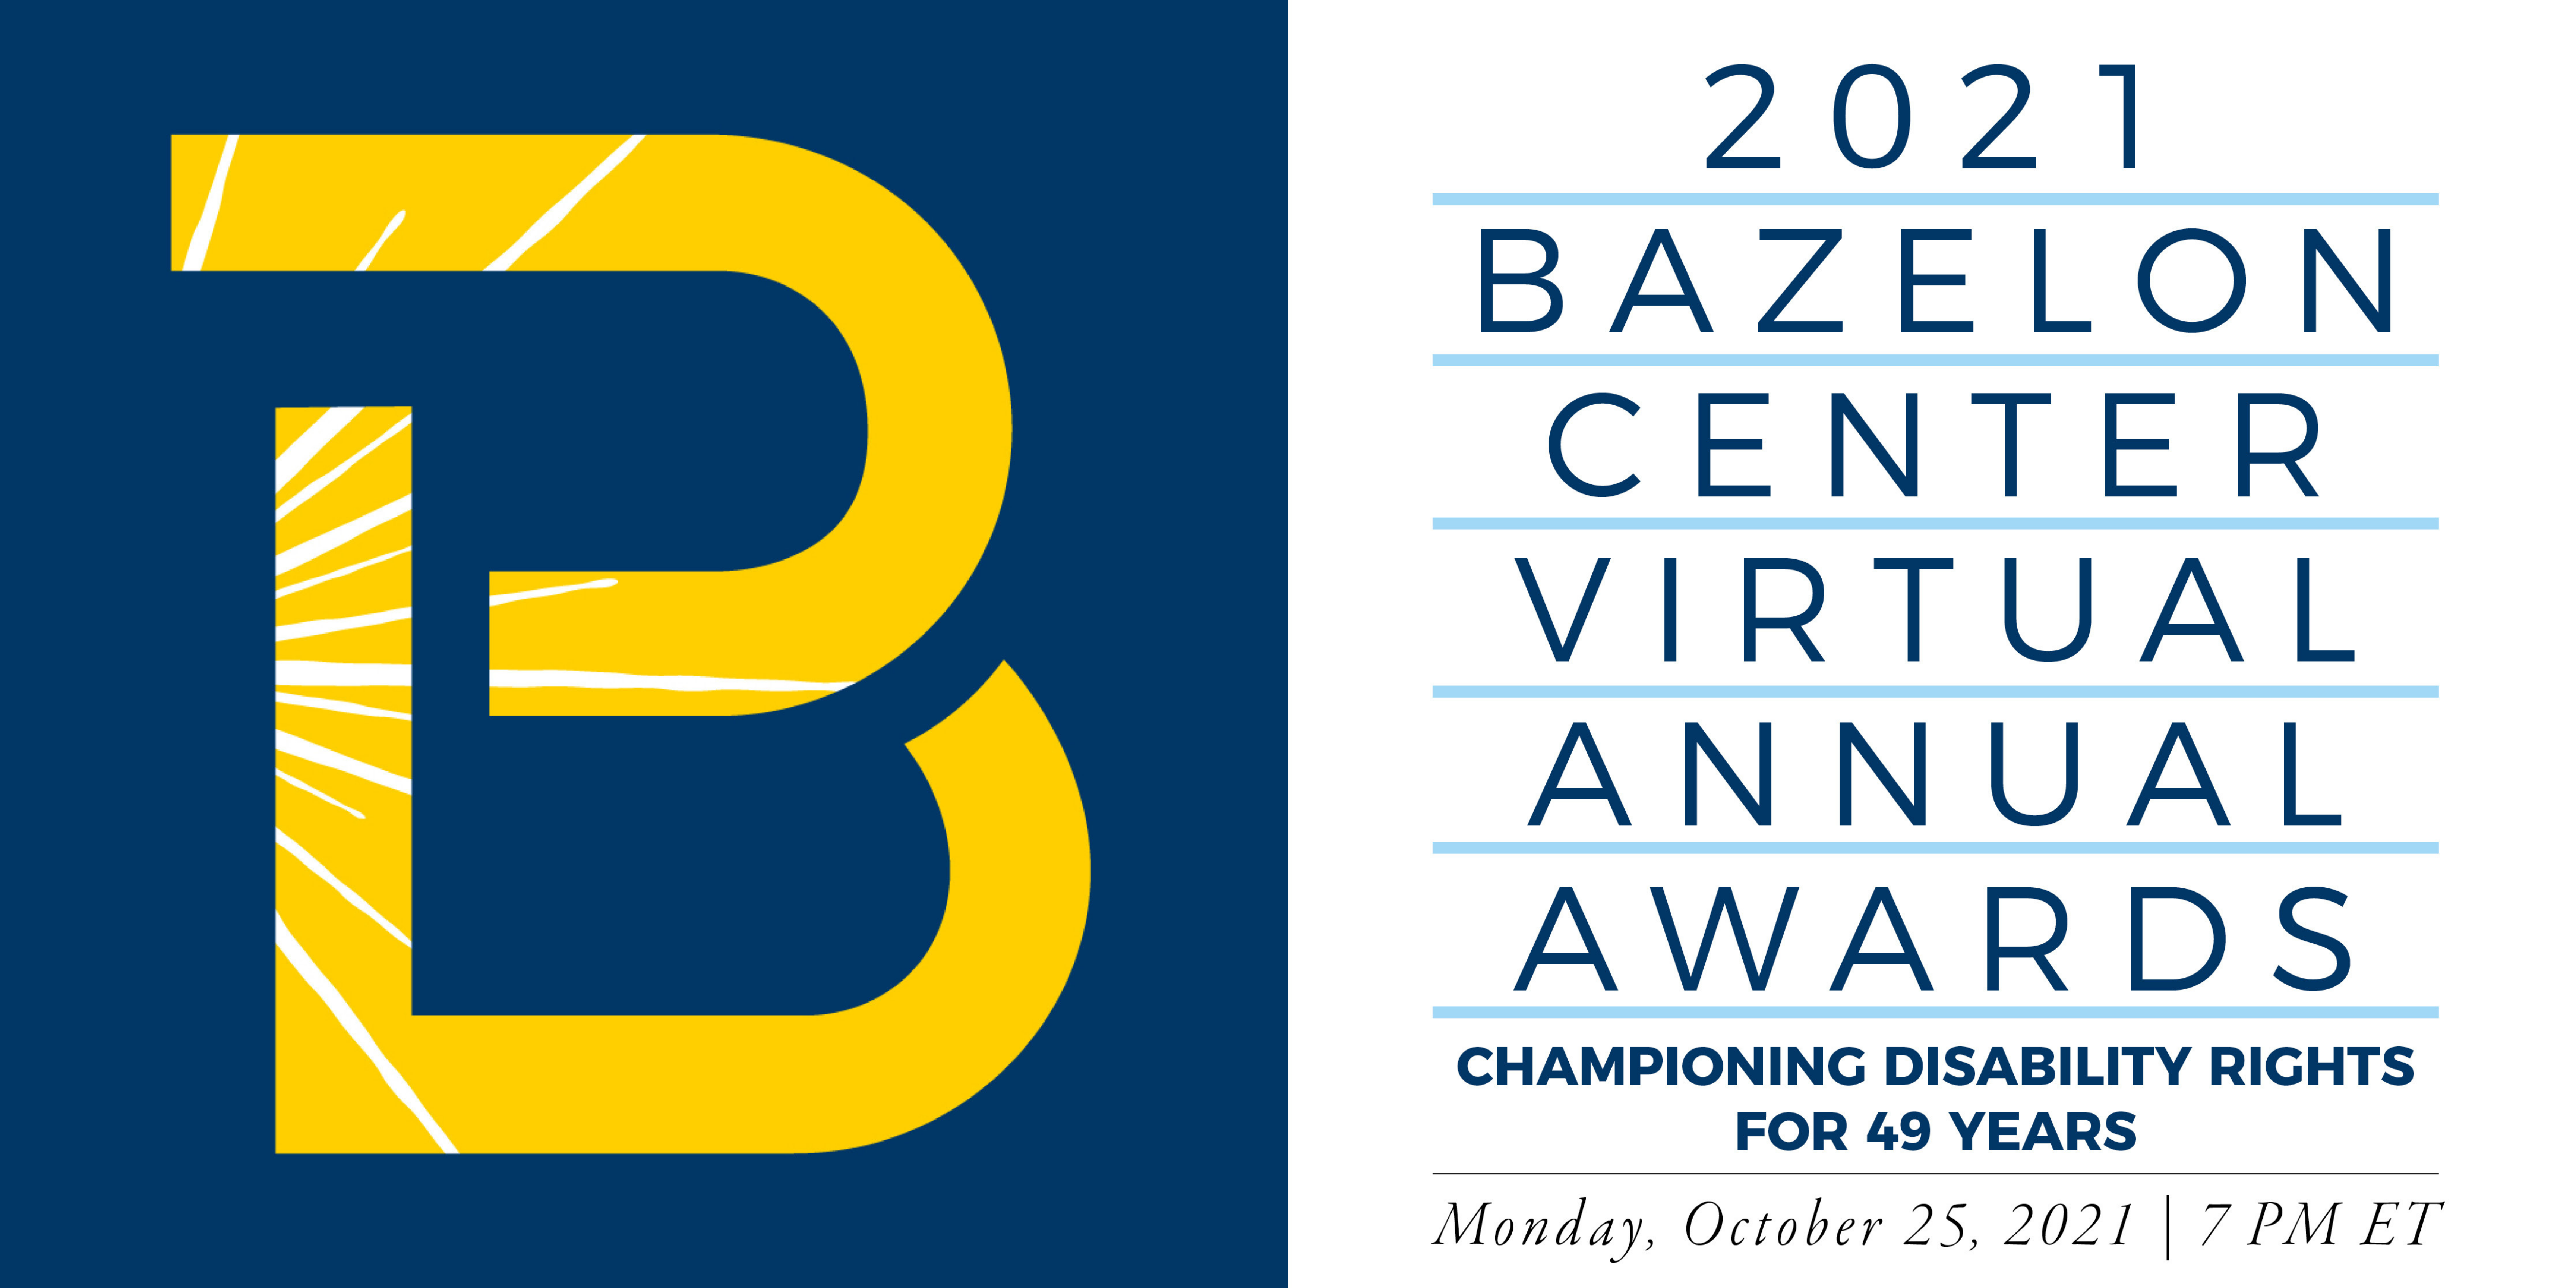 Image with a white and blue background with a large yellow B on the left side and words on the right side reading, 2021 Bazelon Center Virtual Annual Awards Championing Disability Rights for 49 years. Monday, October 25th, 2021 at 7:00 pm Eastern Time.